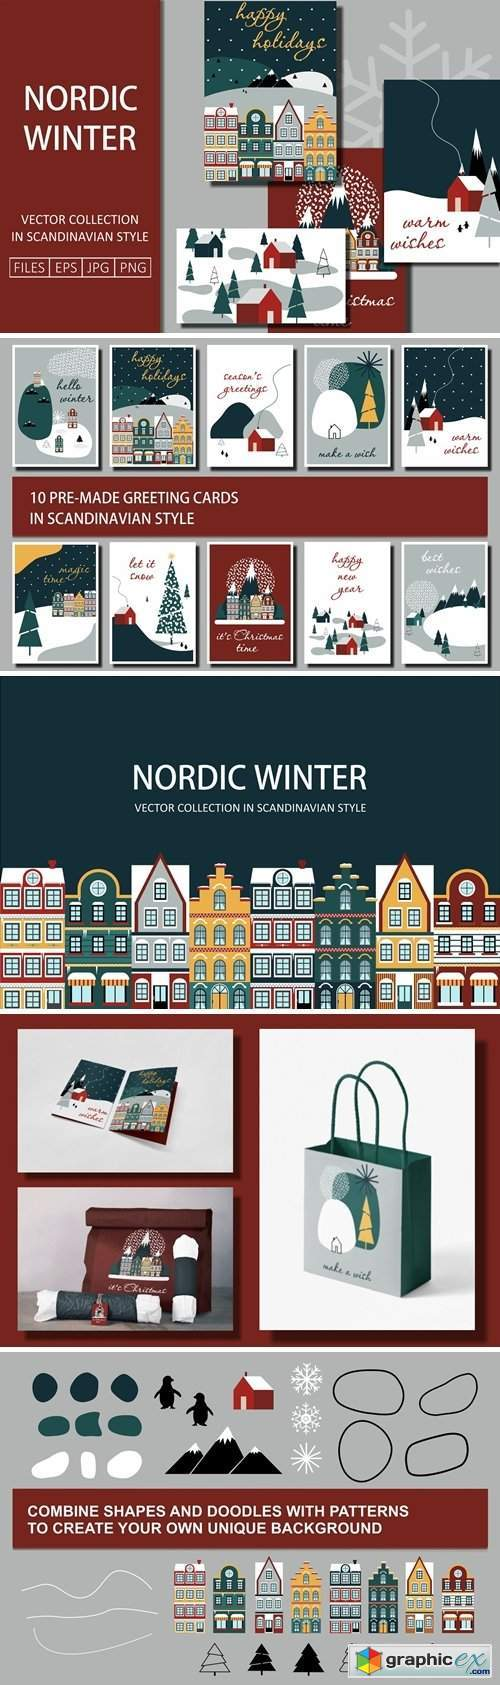 Nordic Winter Greeting Cards